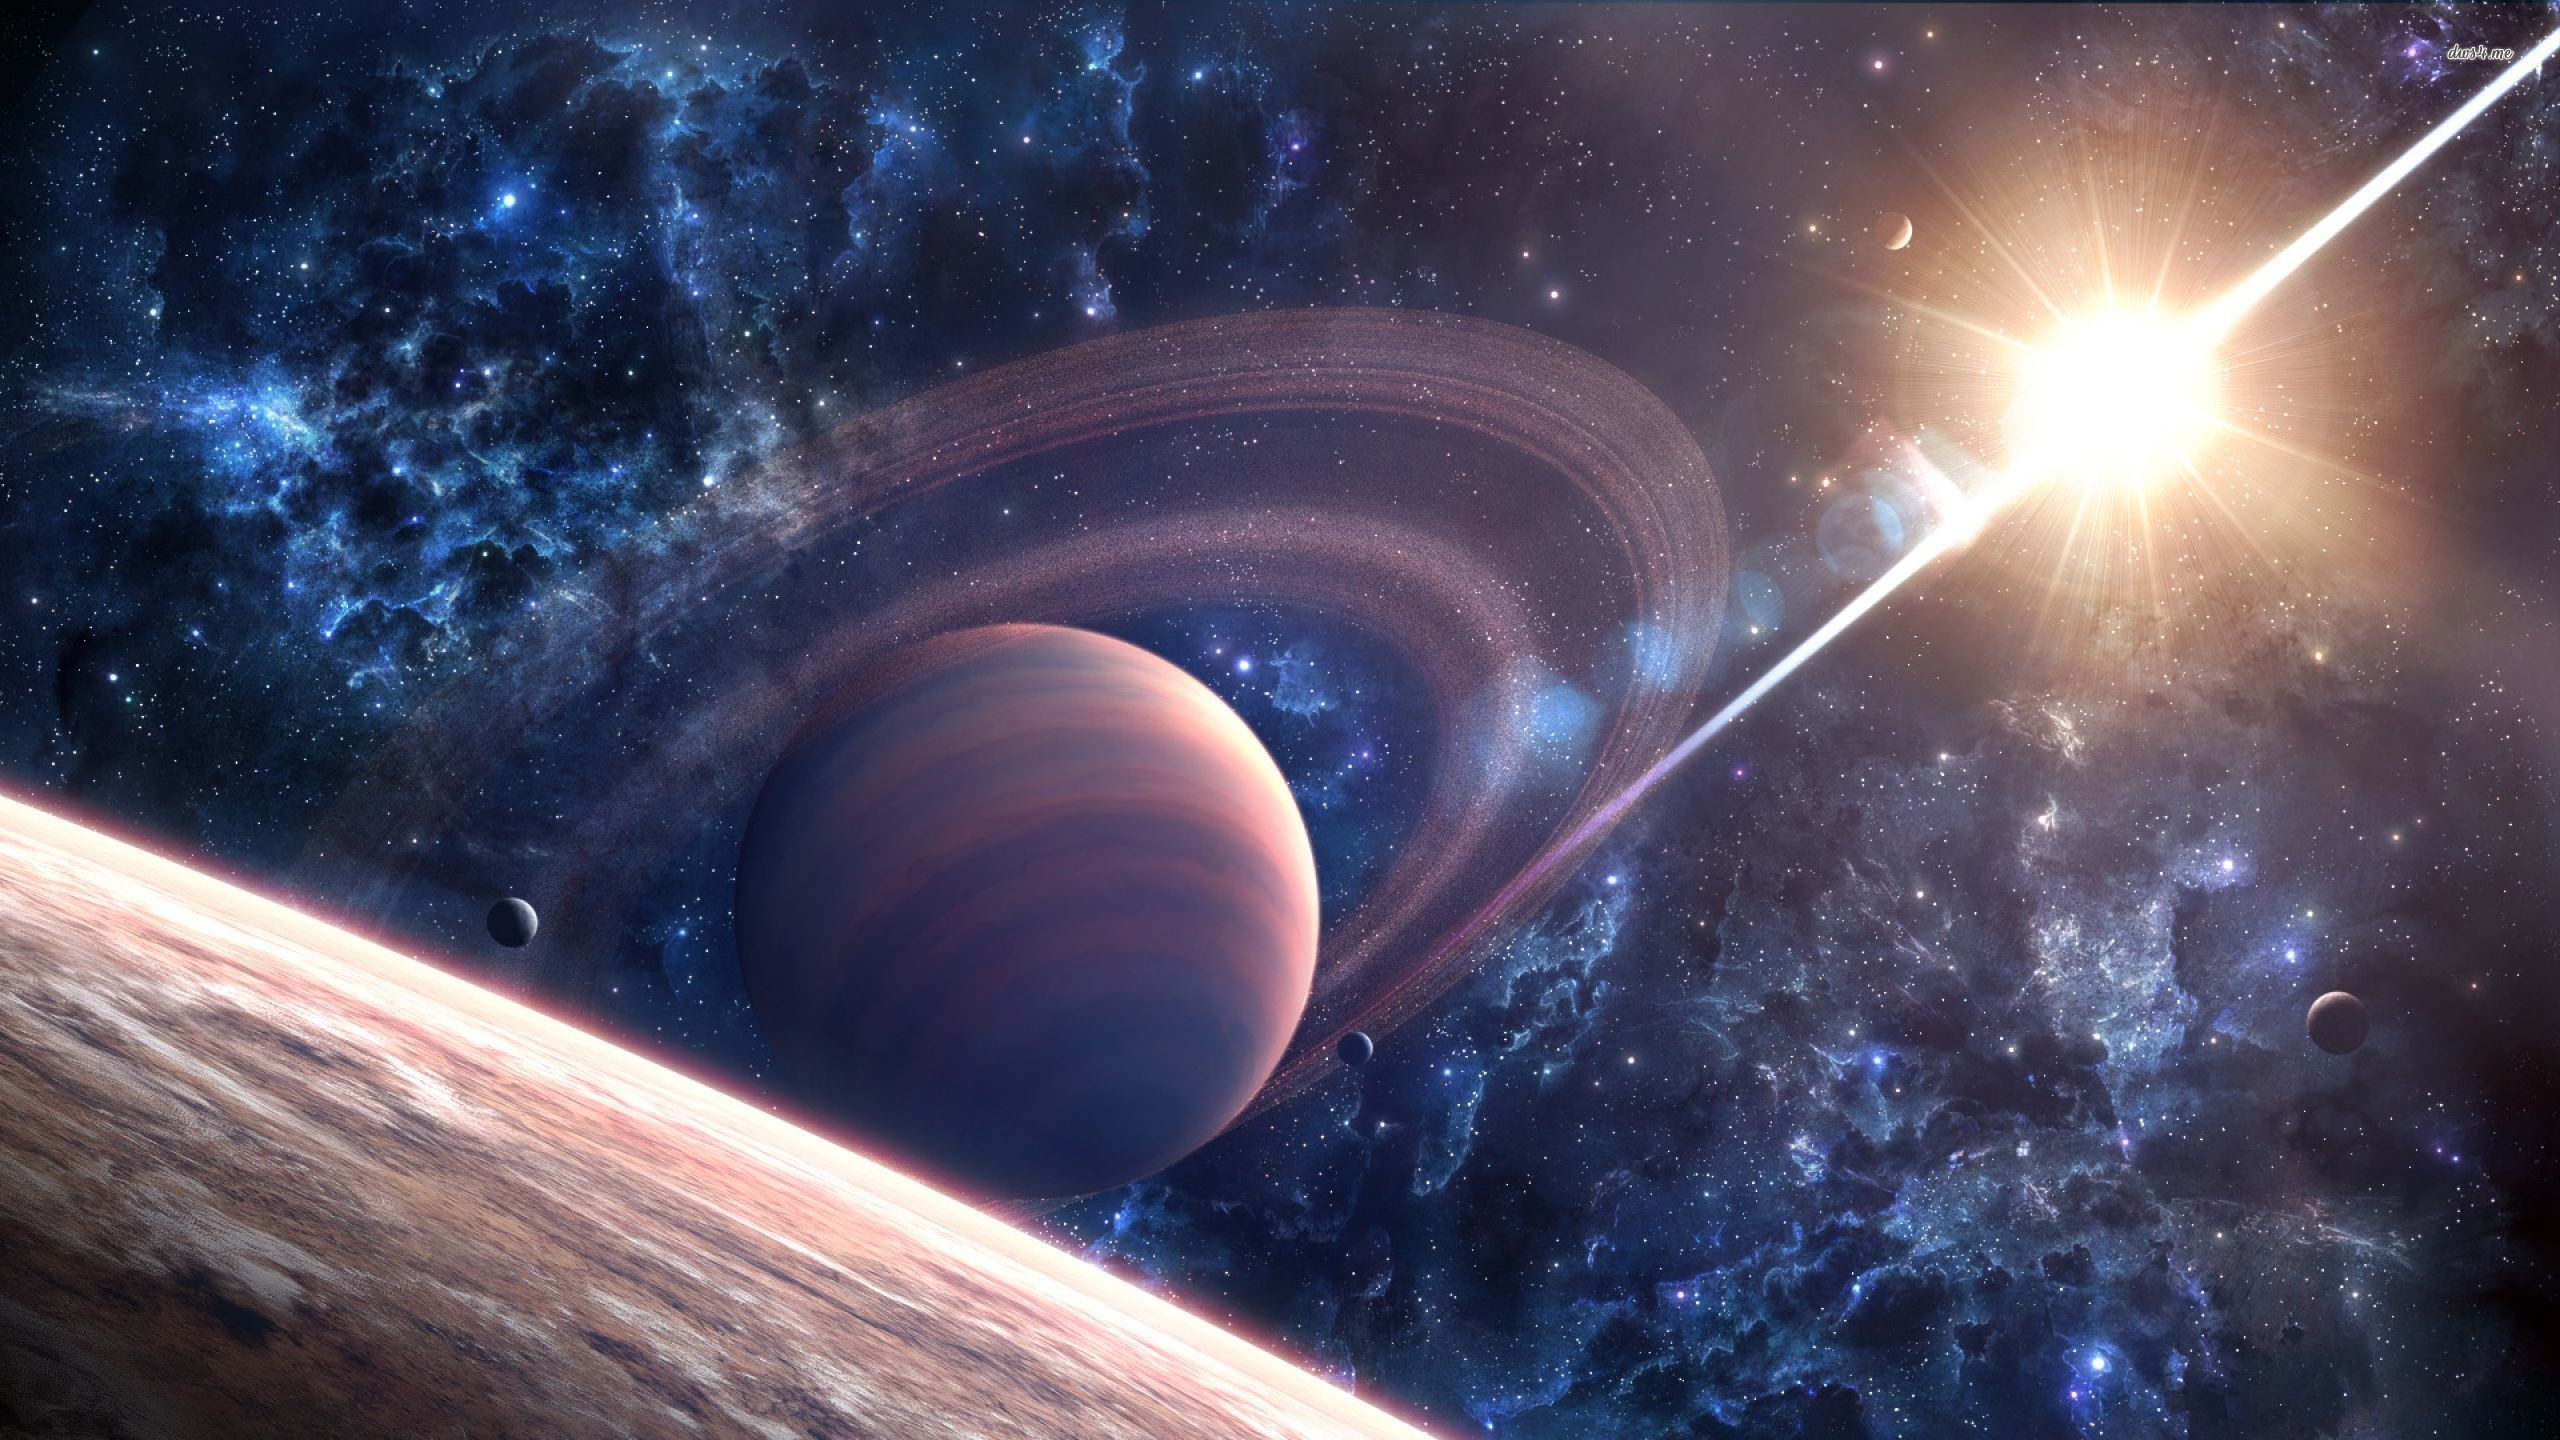 Space wallpapers 1366x768 81 background pictures - Wallpaper 1366x768 space ...